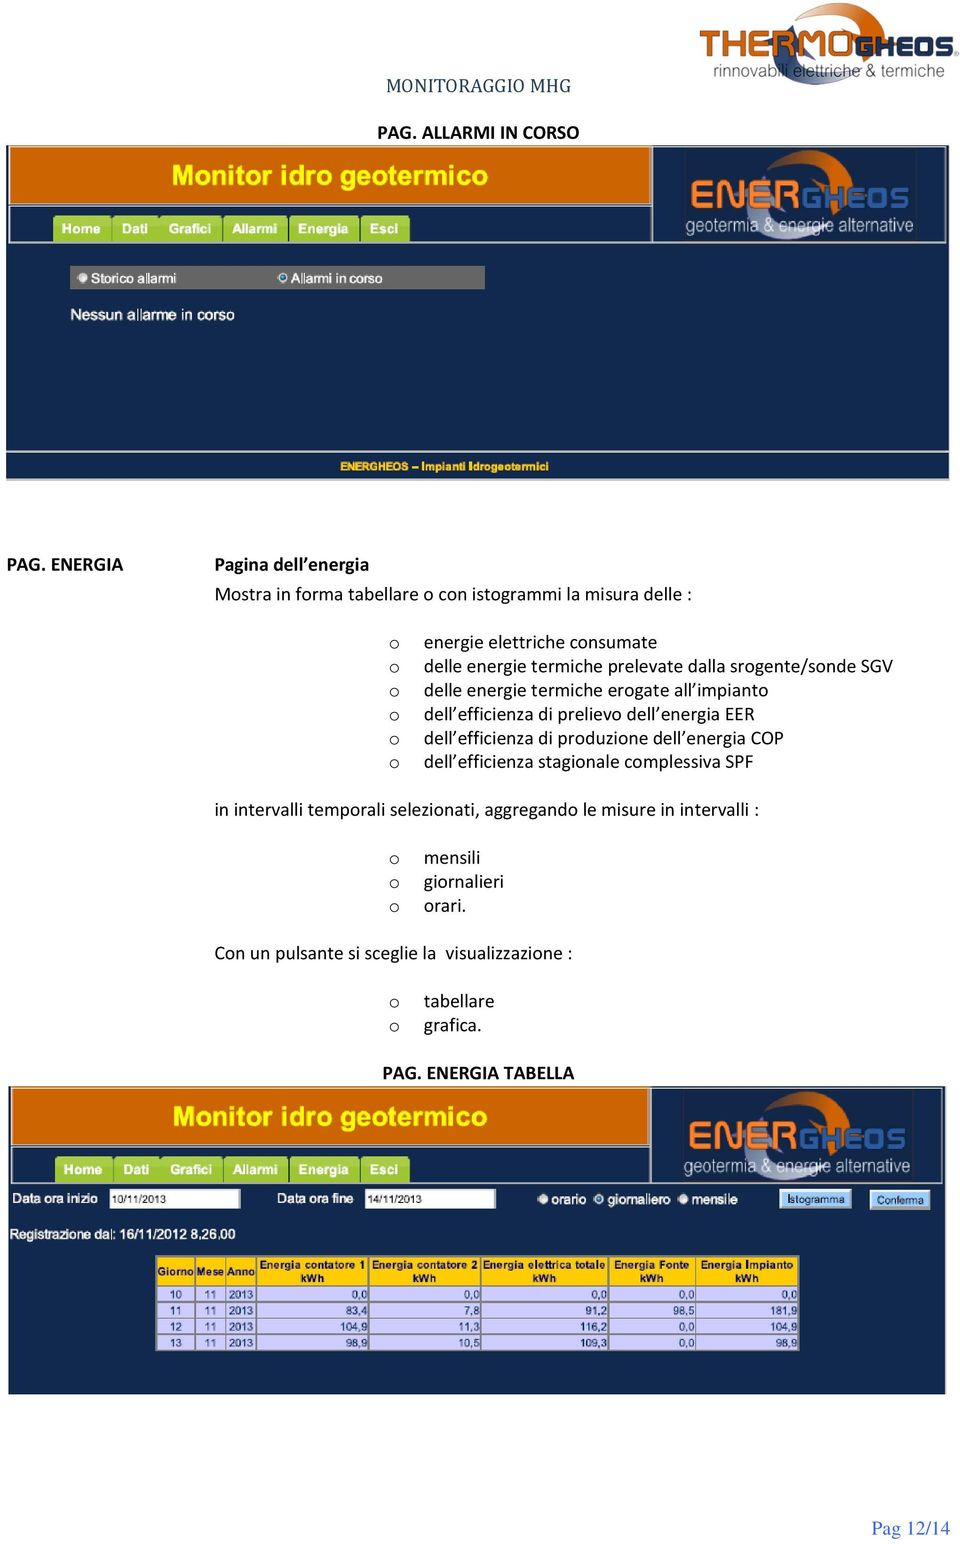 prelevate dalla srgente/snde SGV delle energie termiche ergate all impiant dell efficienza di preliev dell energia EER dell efficienza di